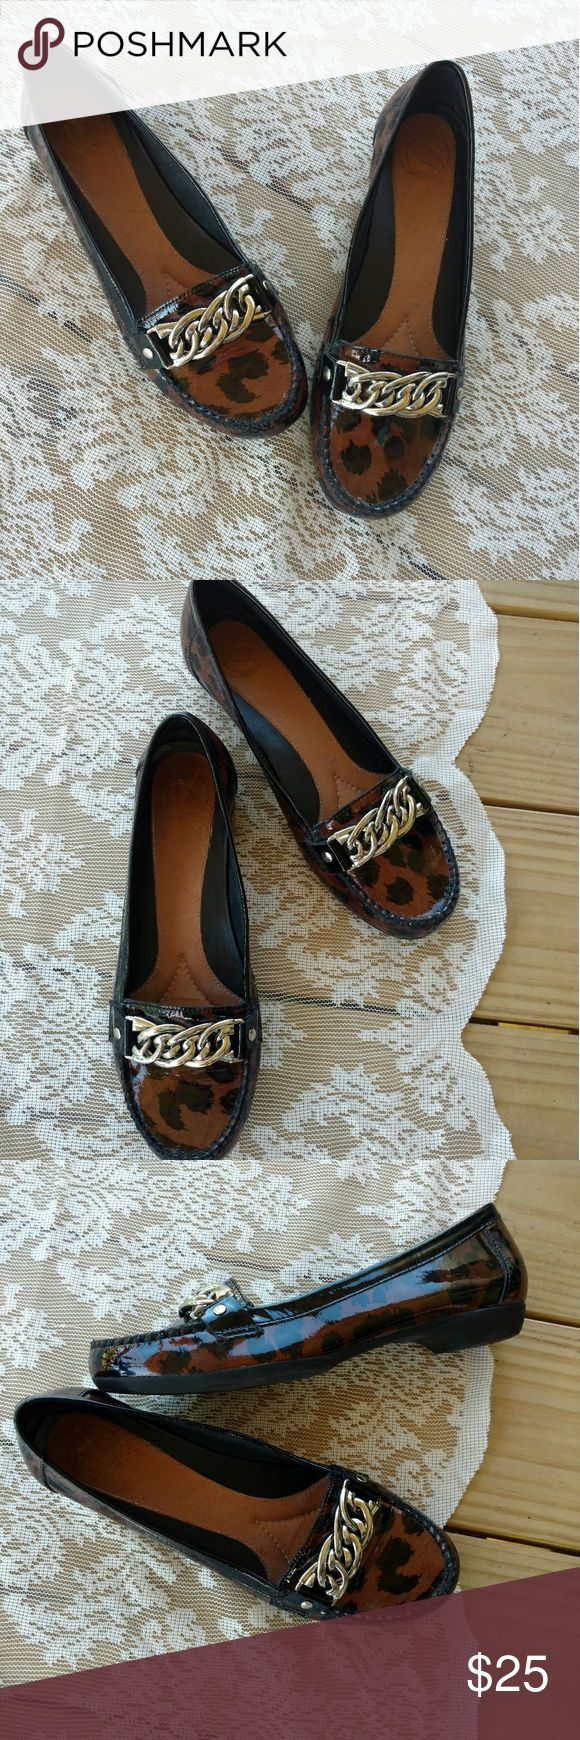 Nurture Cheetah Flats Gorgeous cheetah print flats with a gold chain detail in front. Very clean. No flaws found. Size 7. 30% off bundles Make offers Nurture by Lamaze Shoes Flats & Loafers